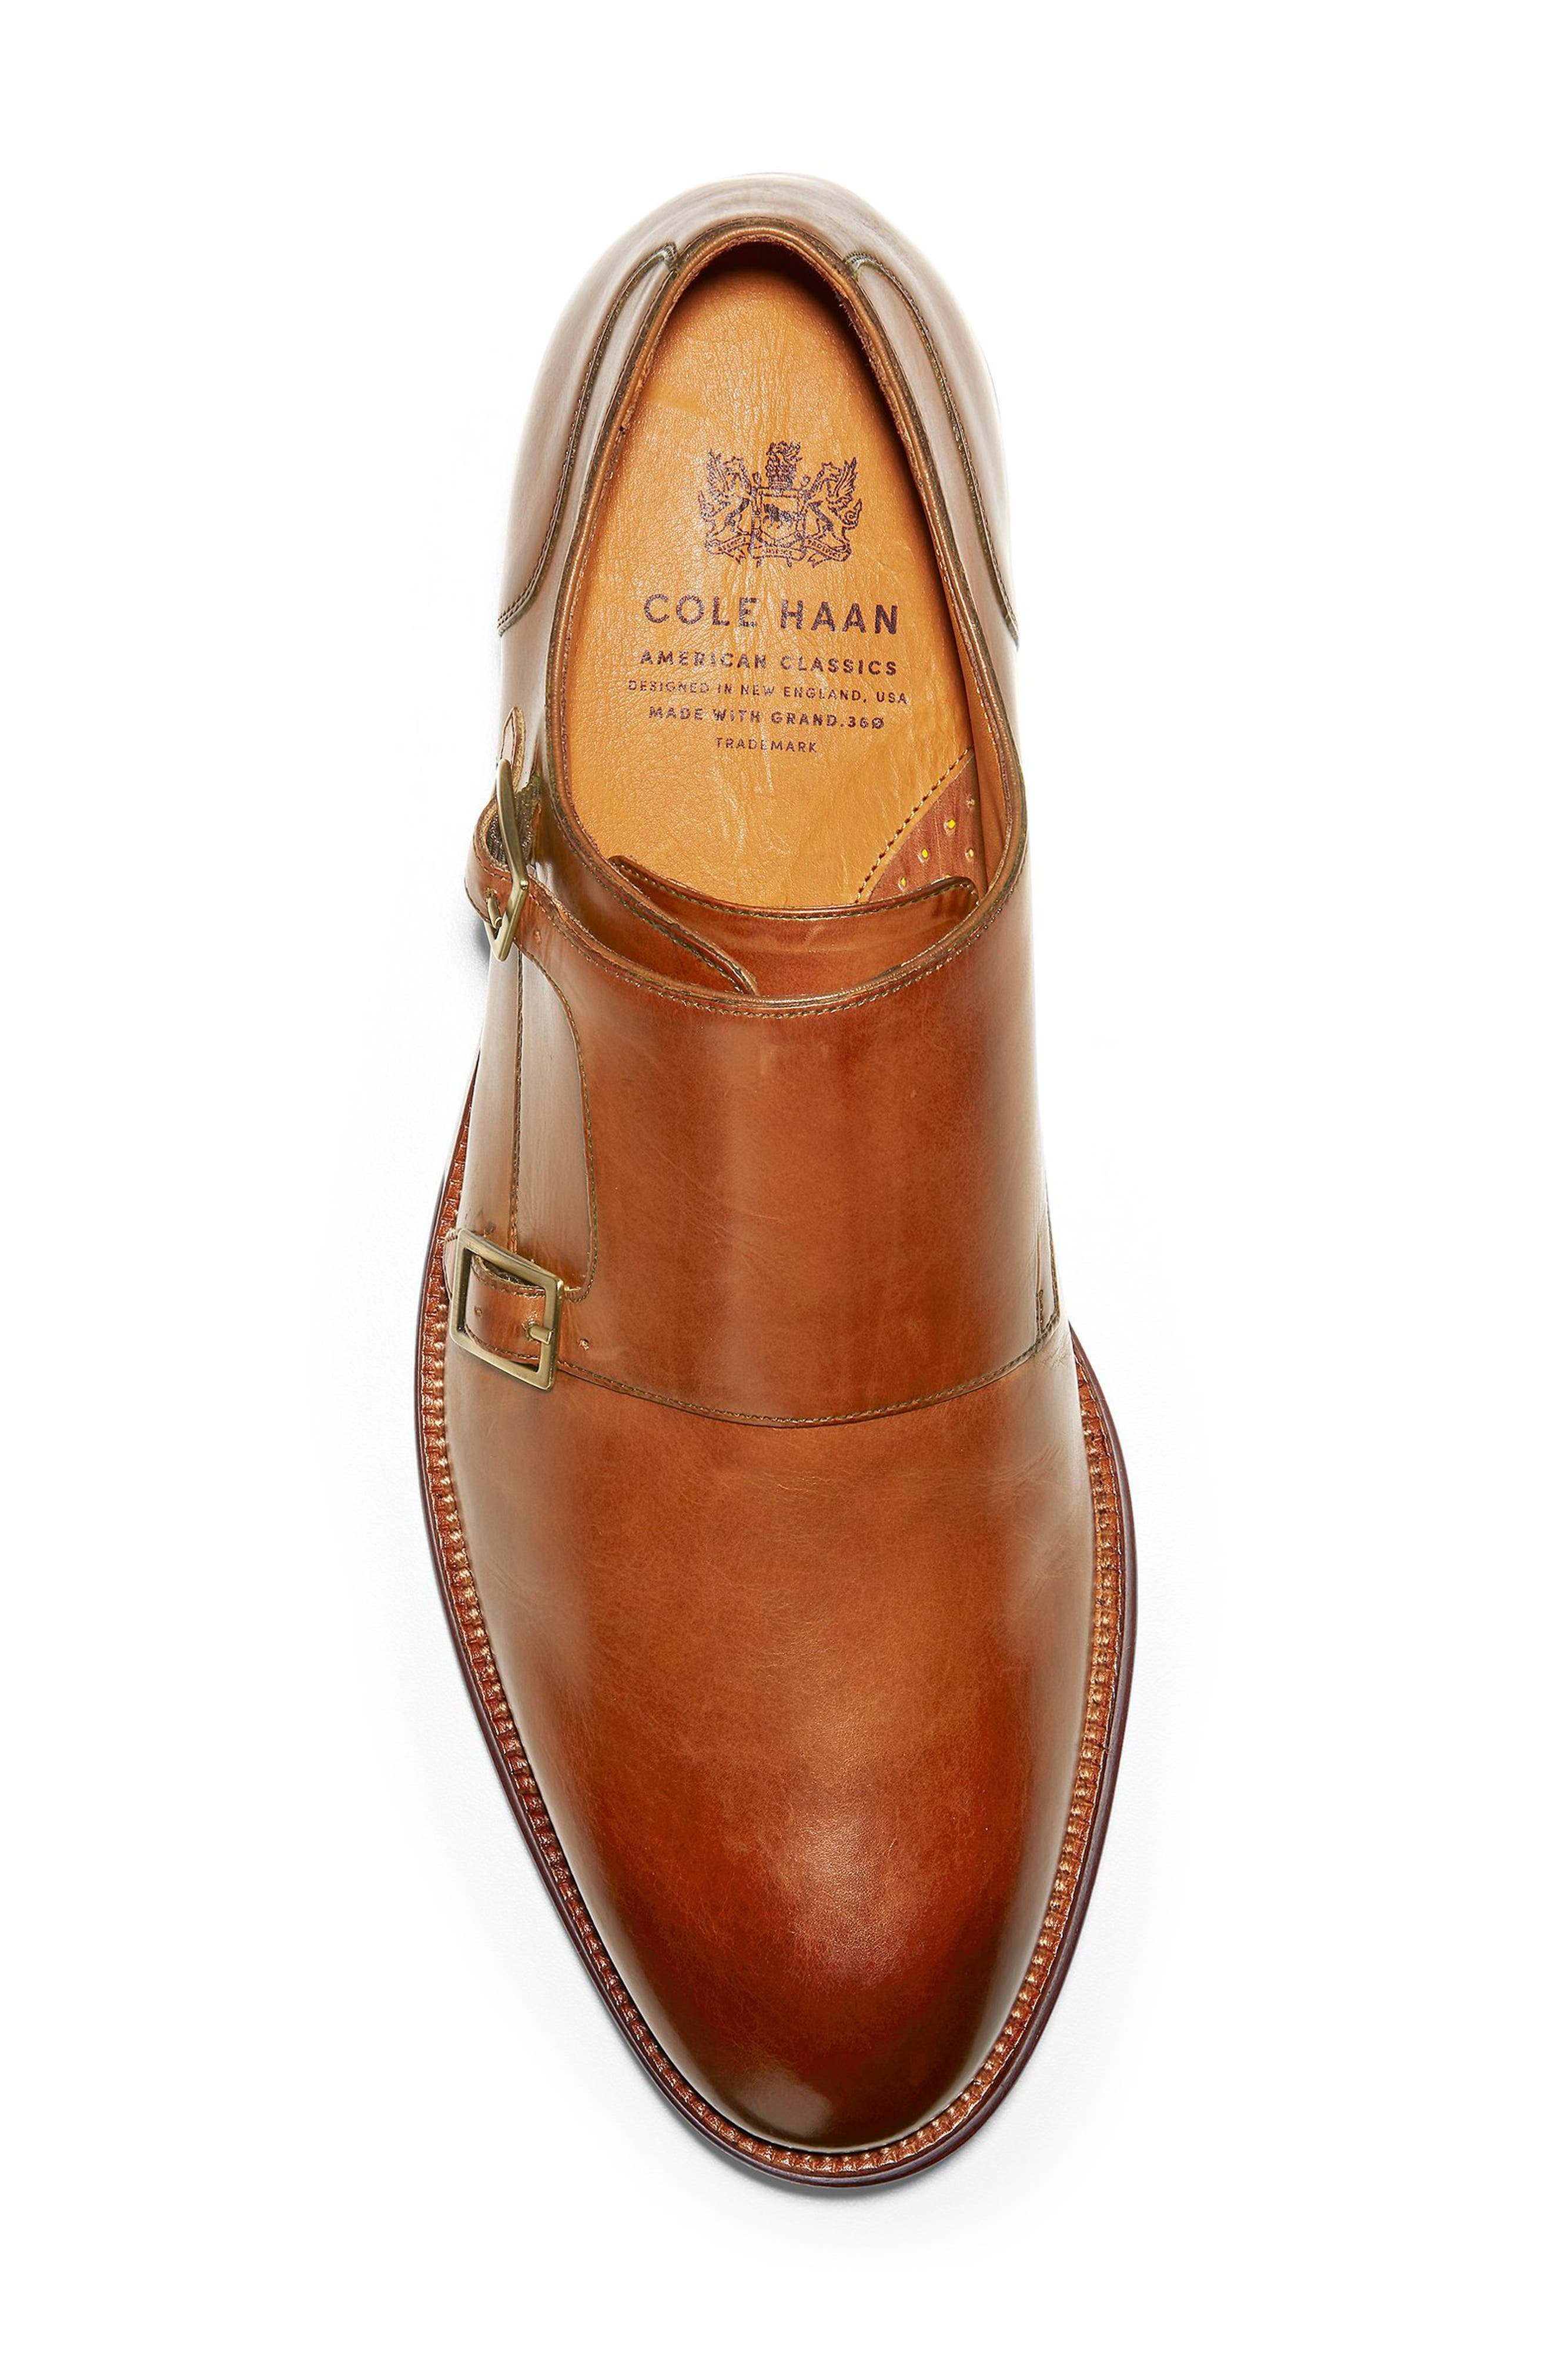 COLE HAAN, American Classics Gramercy Double Strap Monk Shoe, Alternate thumbnail 5, color, BRITISH TAN LEATHER